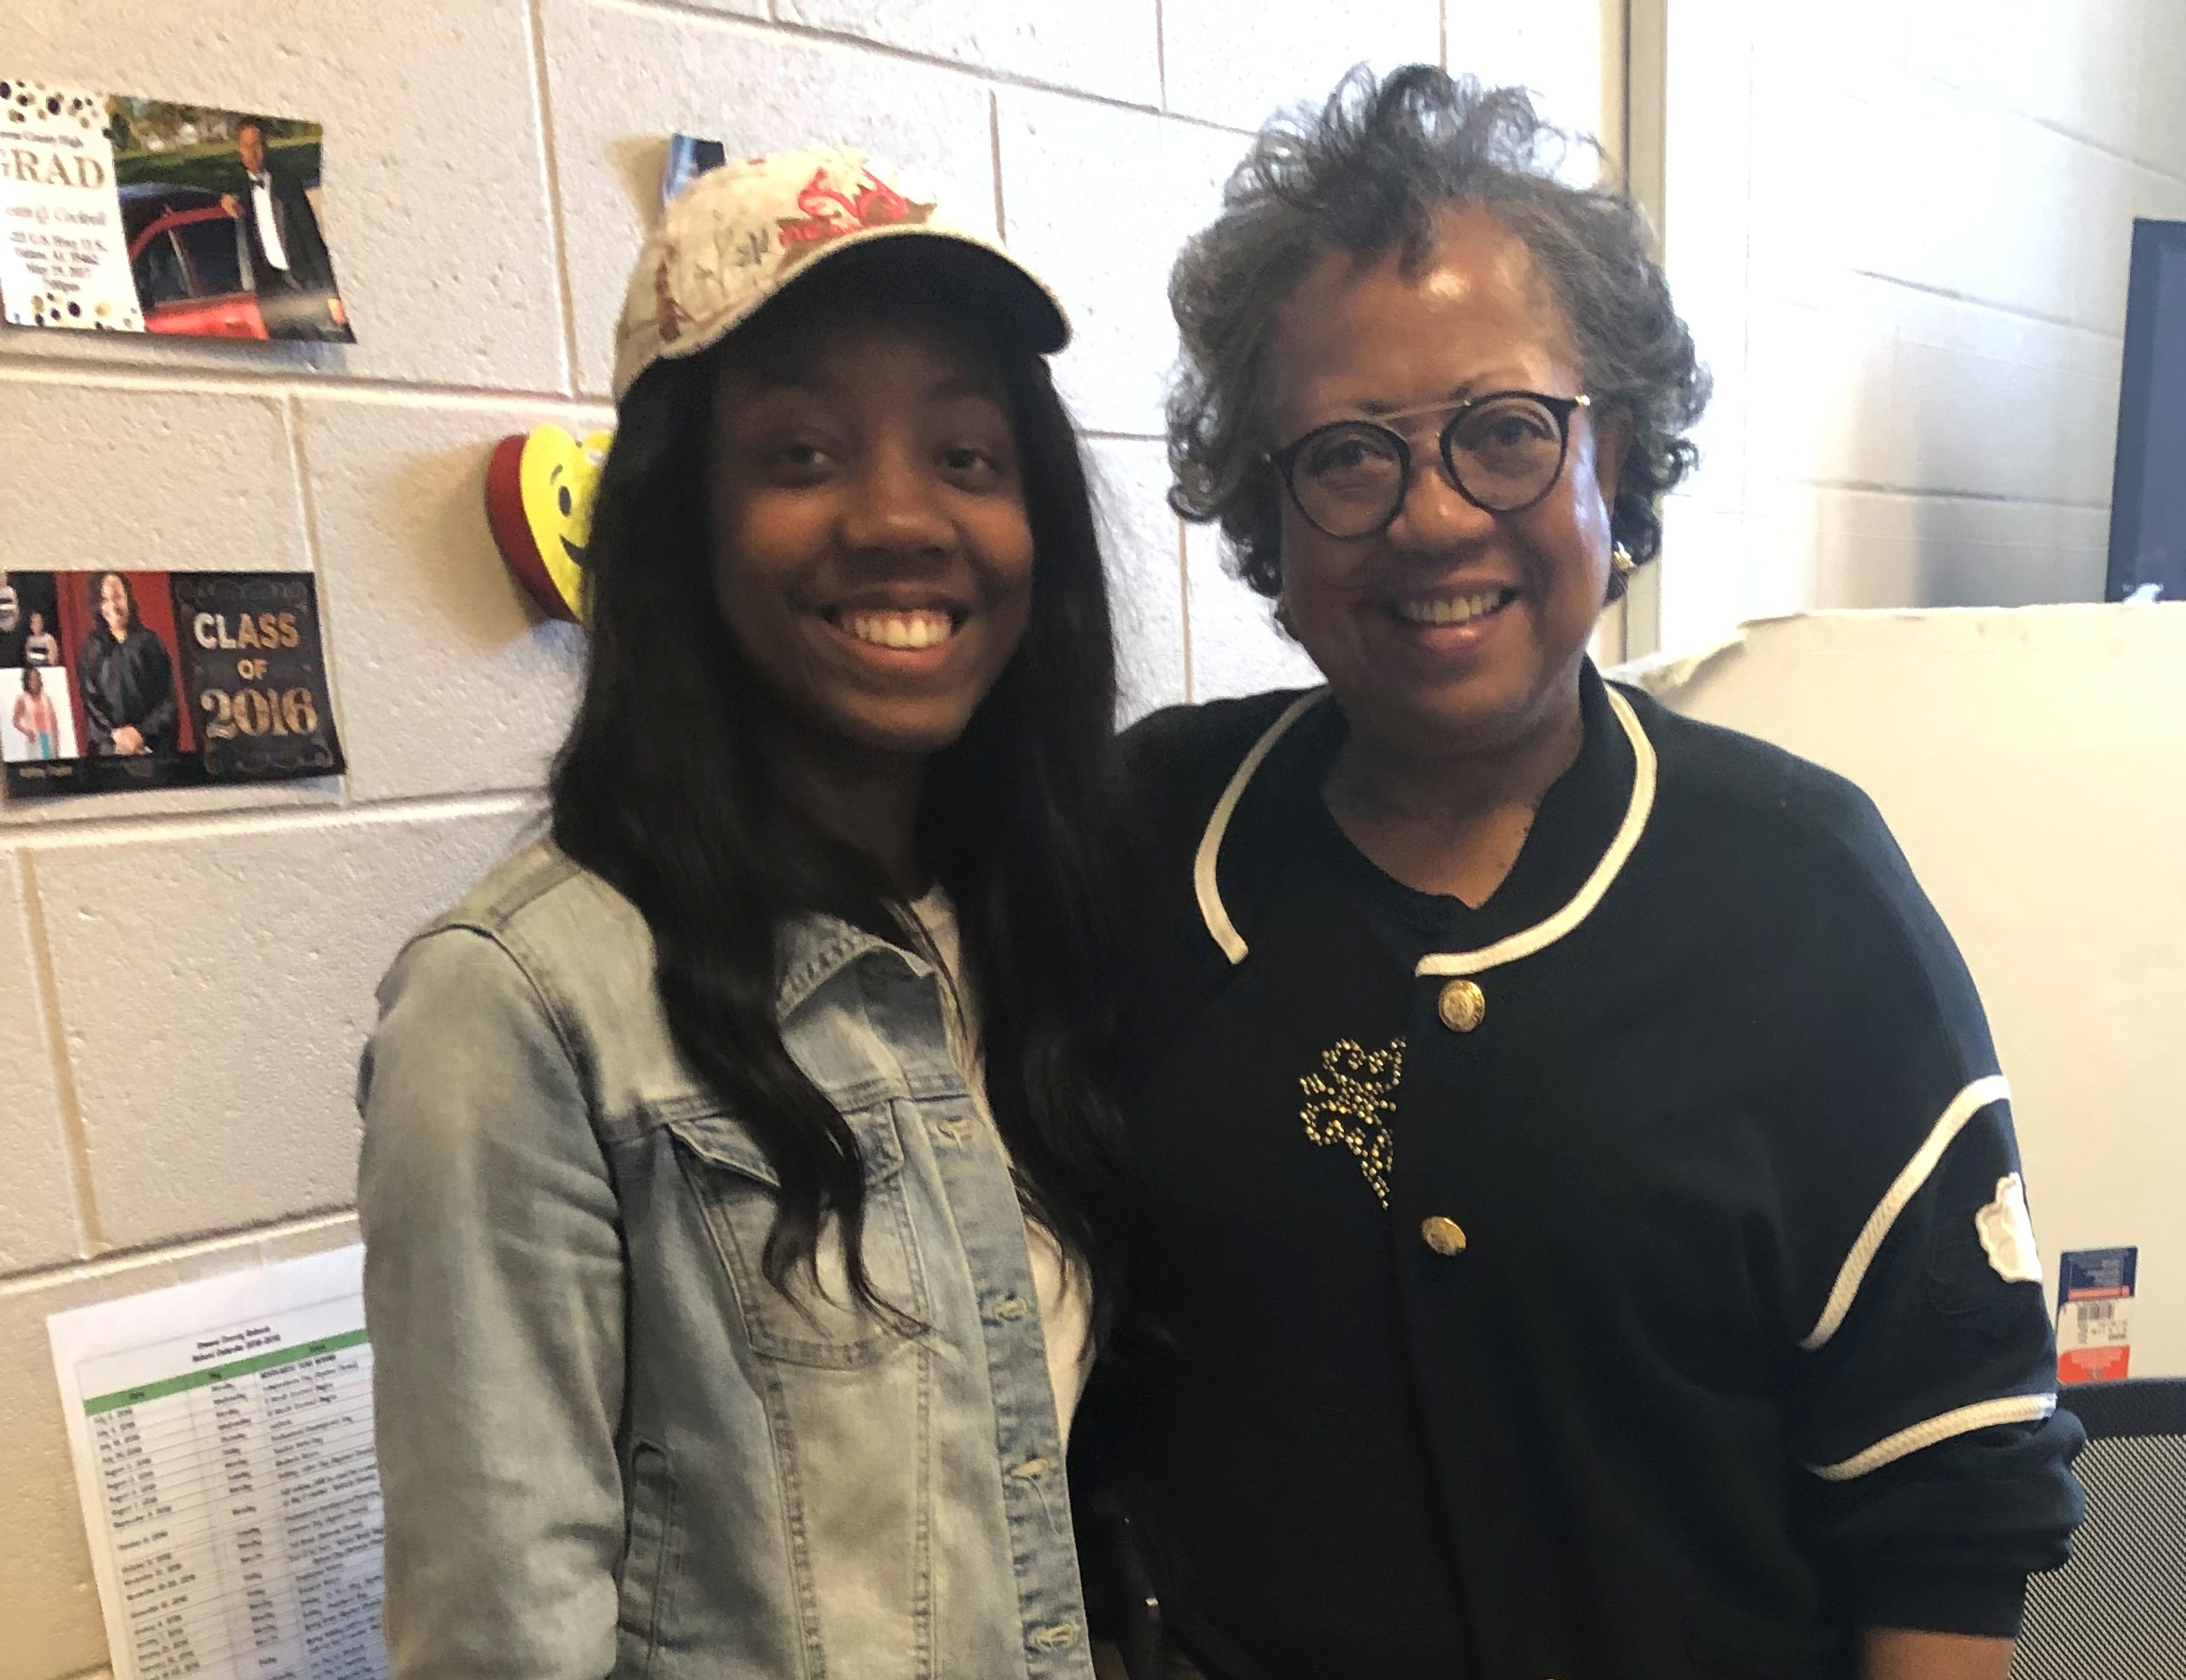 GCHS student Briannah Hudson with Ms. Gilda Jowers